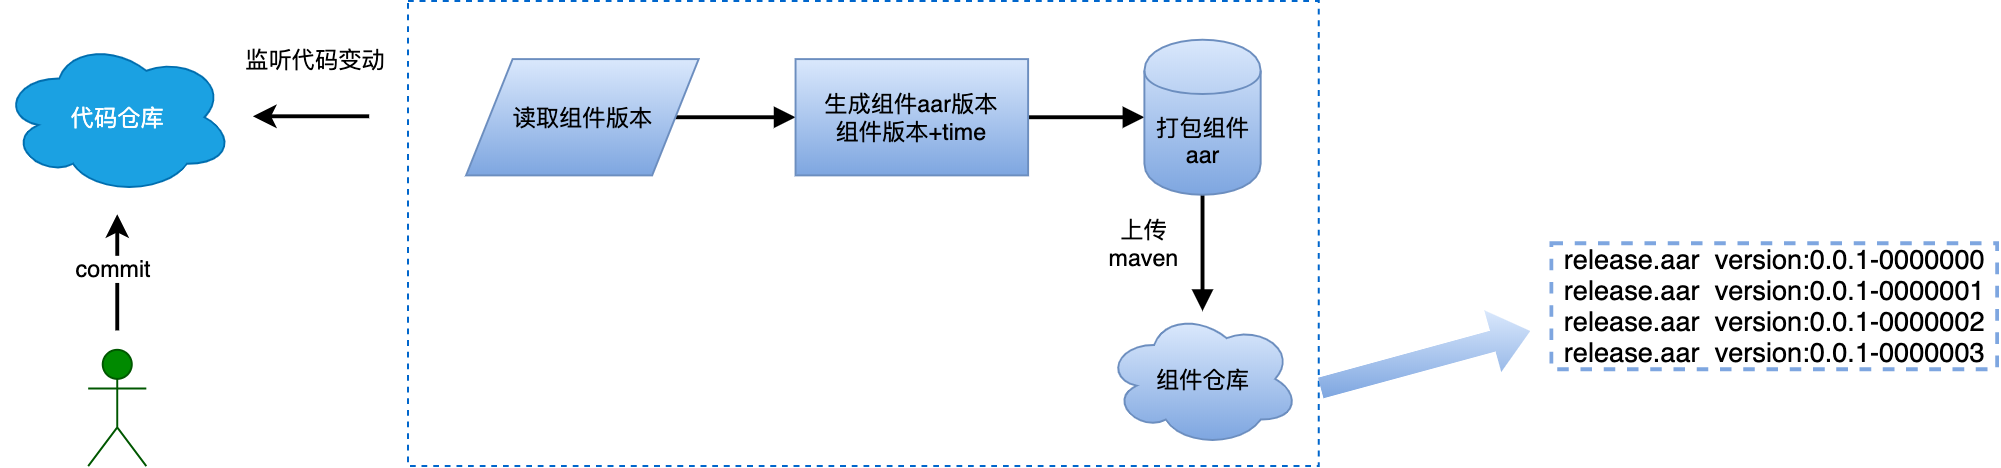 Untitled Diagram (38).png